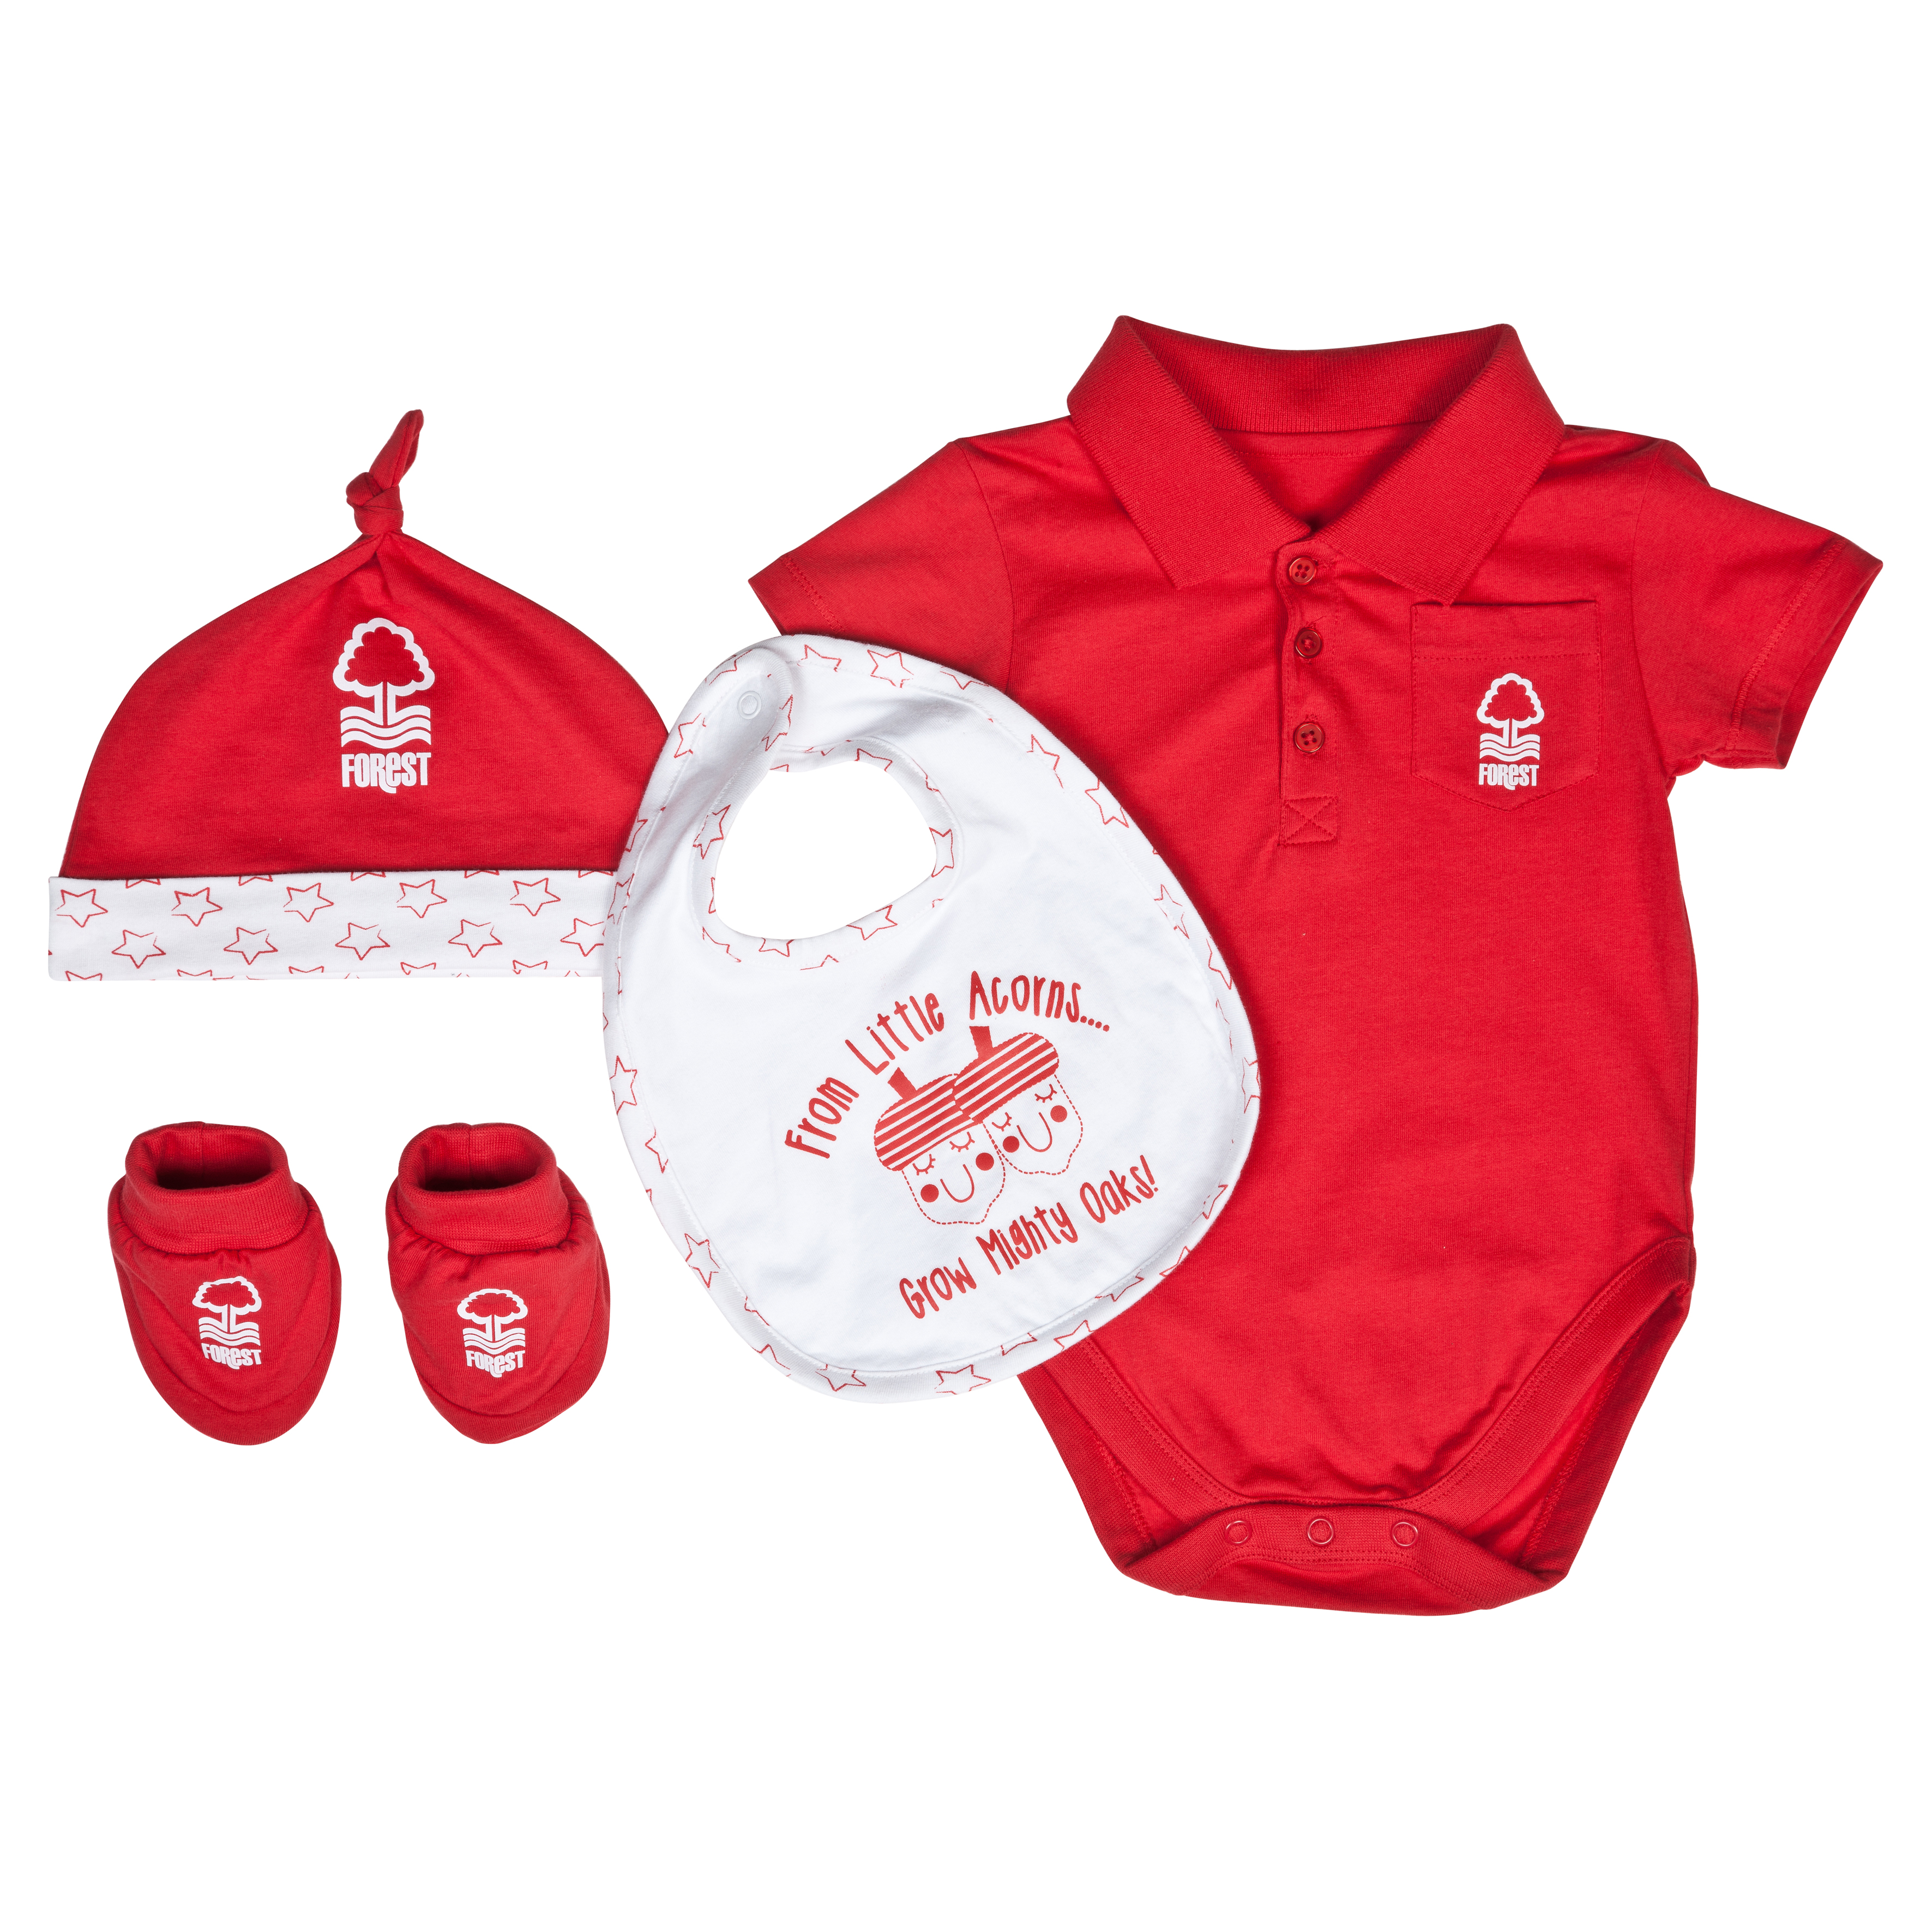 Nottingham Forest Acorns Gift Set - Red/White - Baby